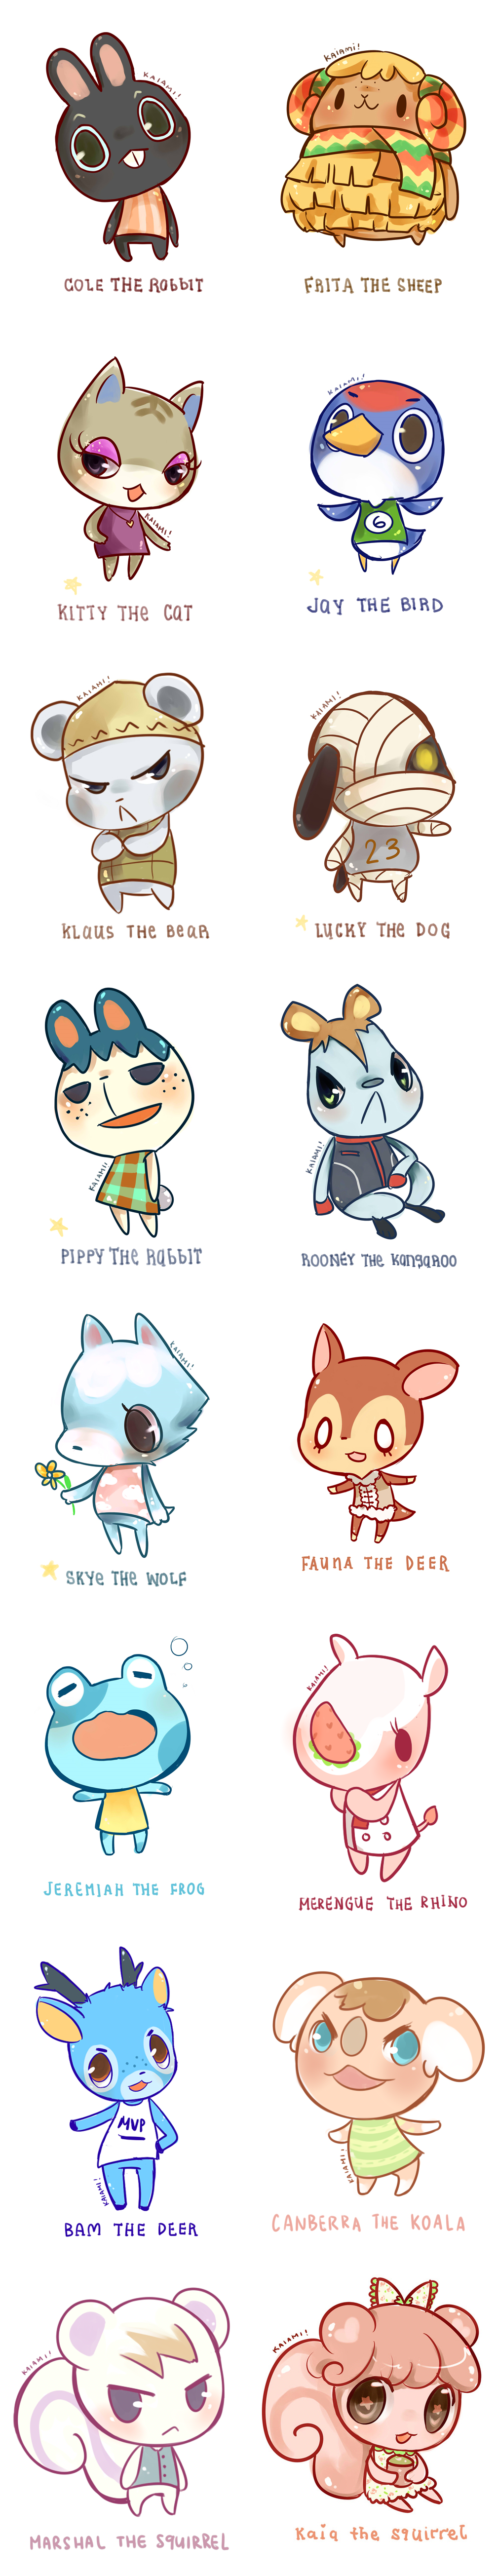 So Cute I Have Canberra And Skye At My Town Uvu Anime Animals